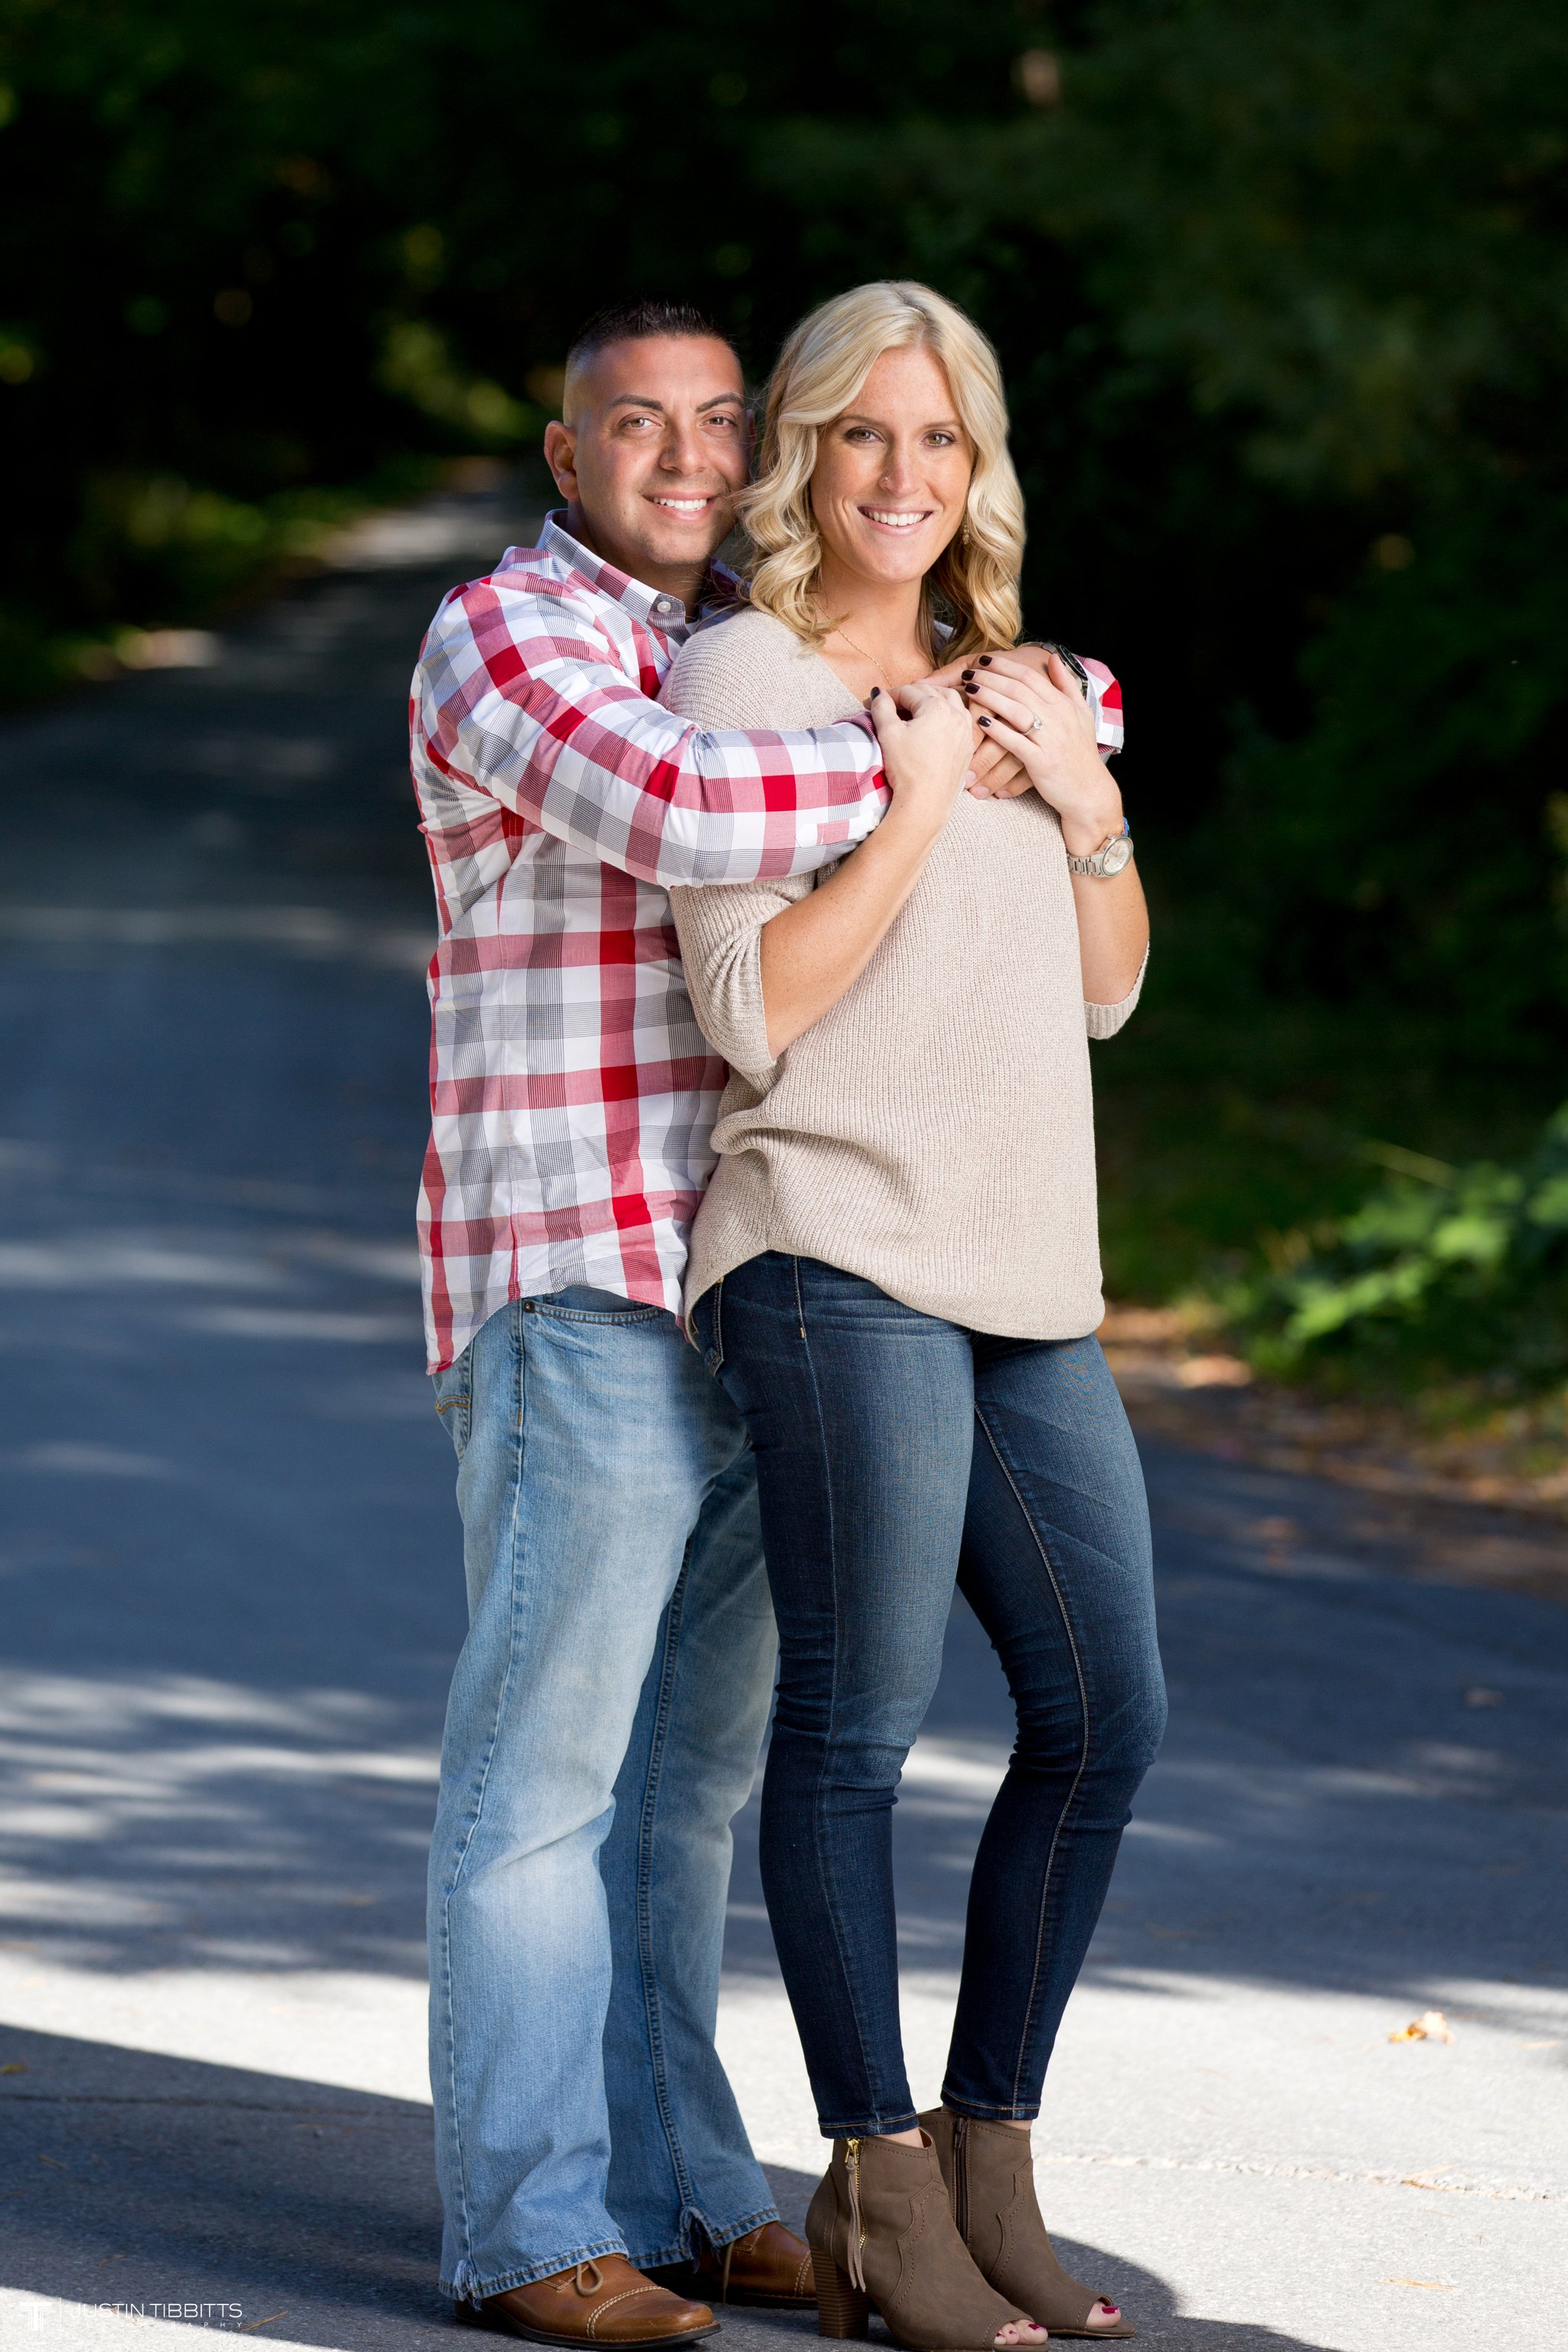 colgate-lake-engagement-photos-with-jenna-and-mike_0006